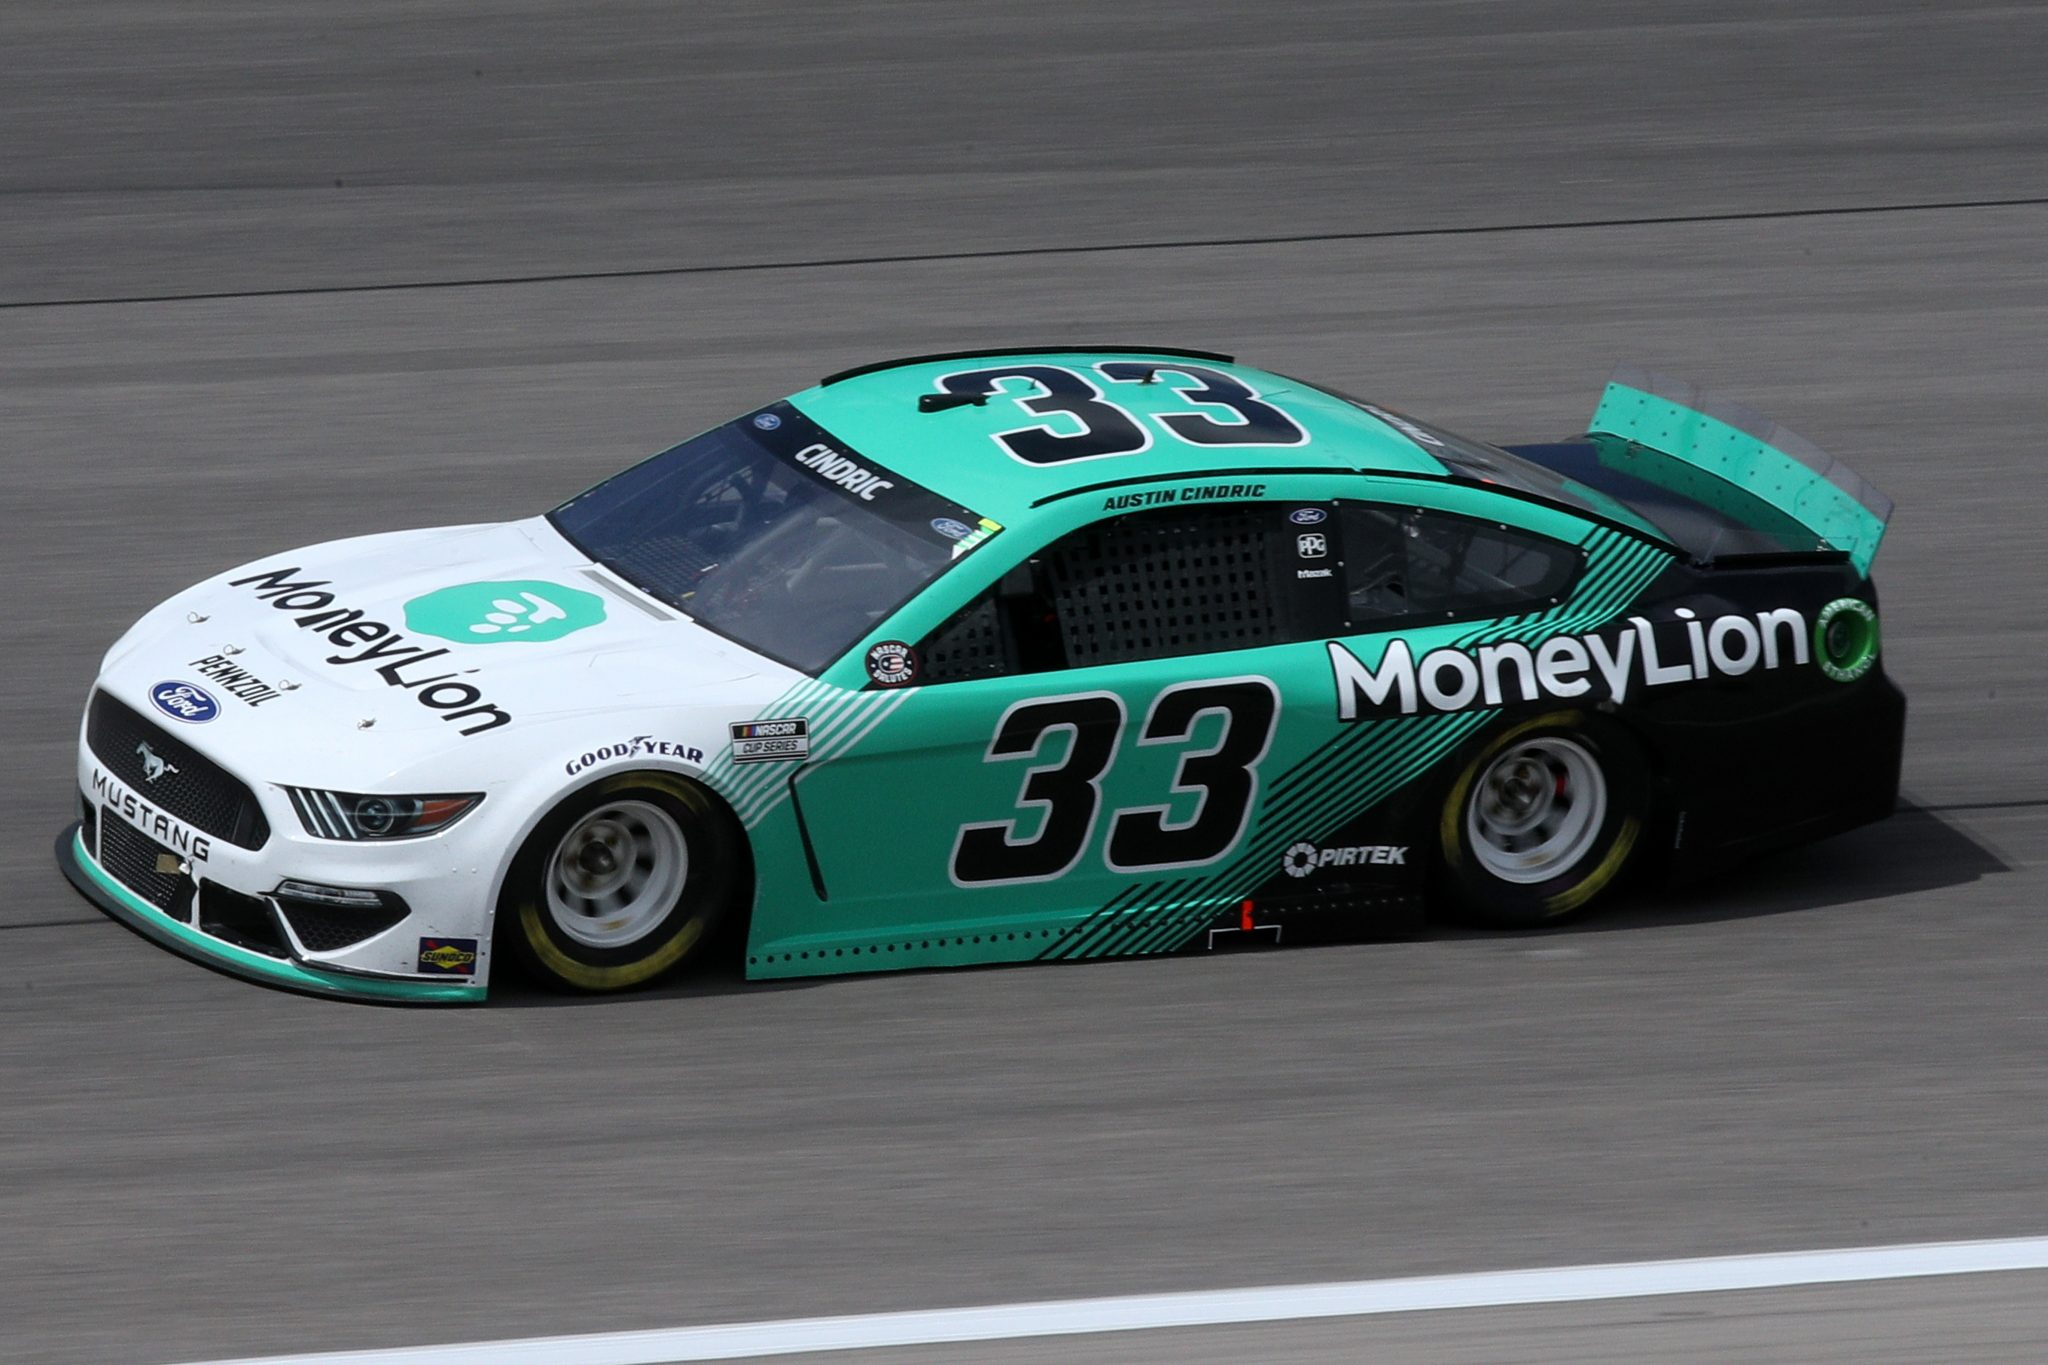 KANSAS CITY, KANSAS - MAY 02: Austin Cindric, driver of the #33 MoneyLion Ford, drives during the NASCAR Cup Series Buschy McBusch Race 400 at Kansas Speedway on May 02, 2021 in Kansas City, Kansas. (Photo by Sean Gardner/Getty Images) | Getty Images